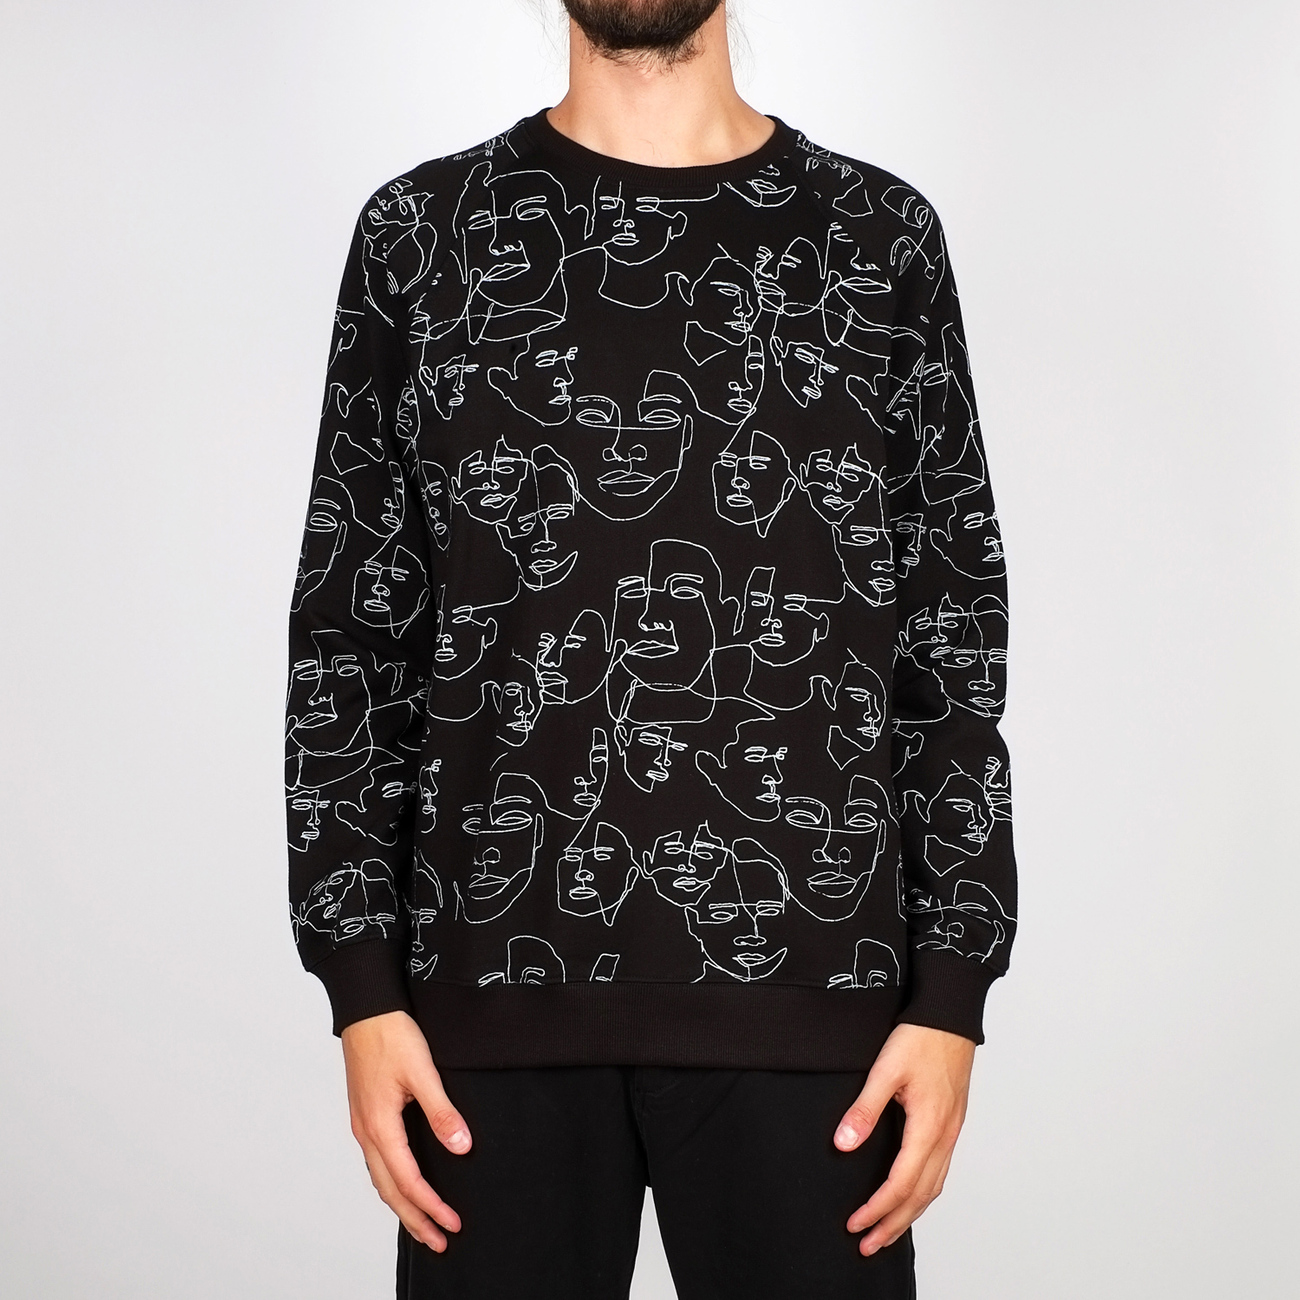 Sweatshirt Malmoe Faces Black